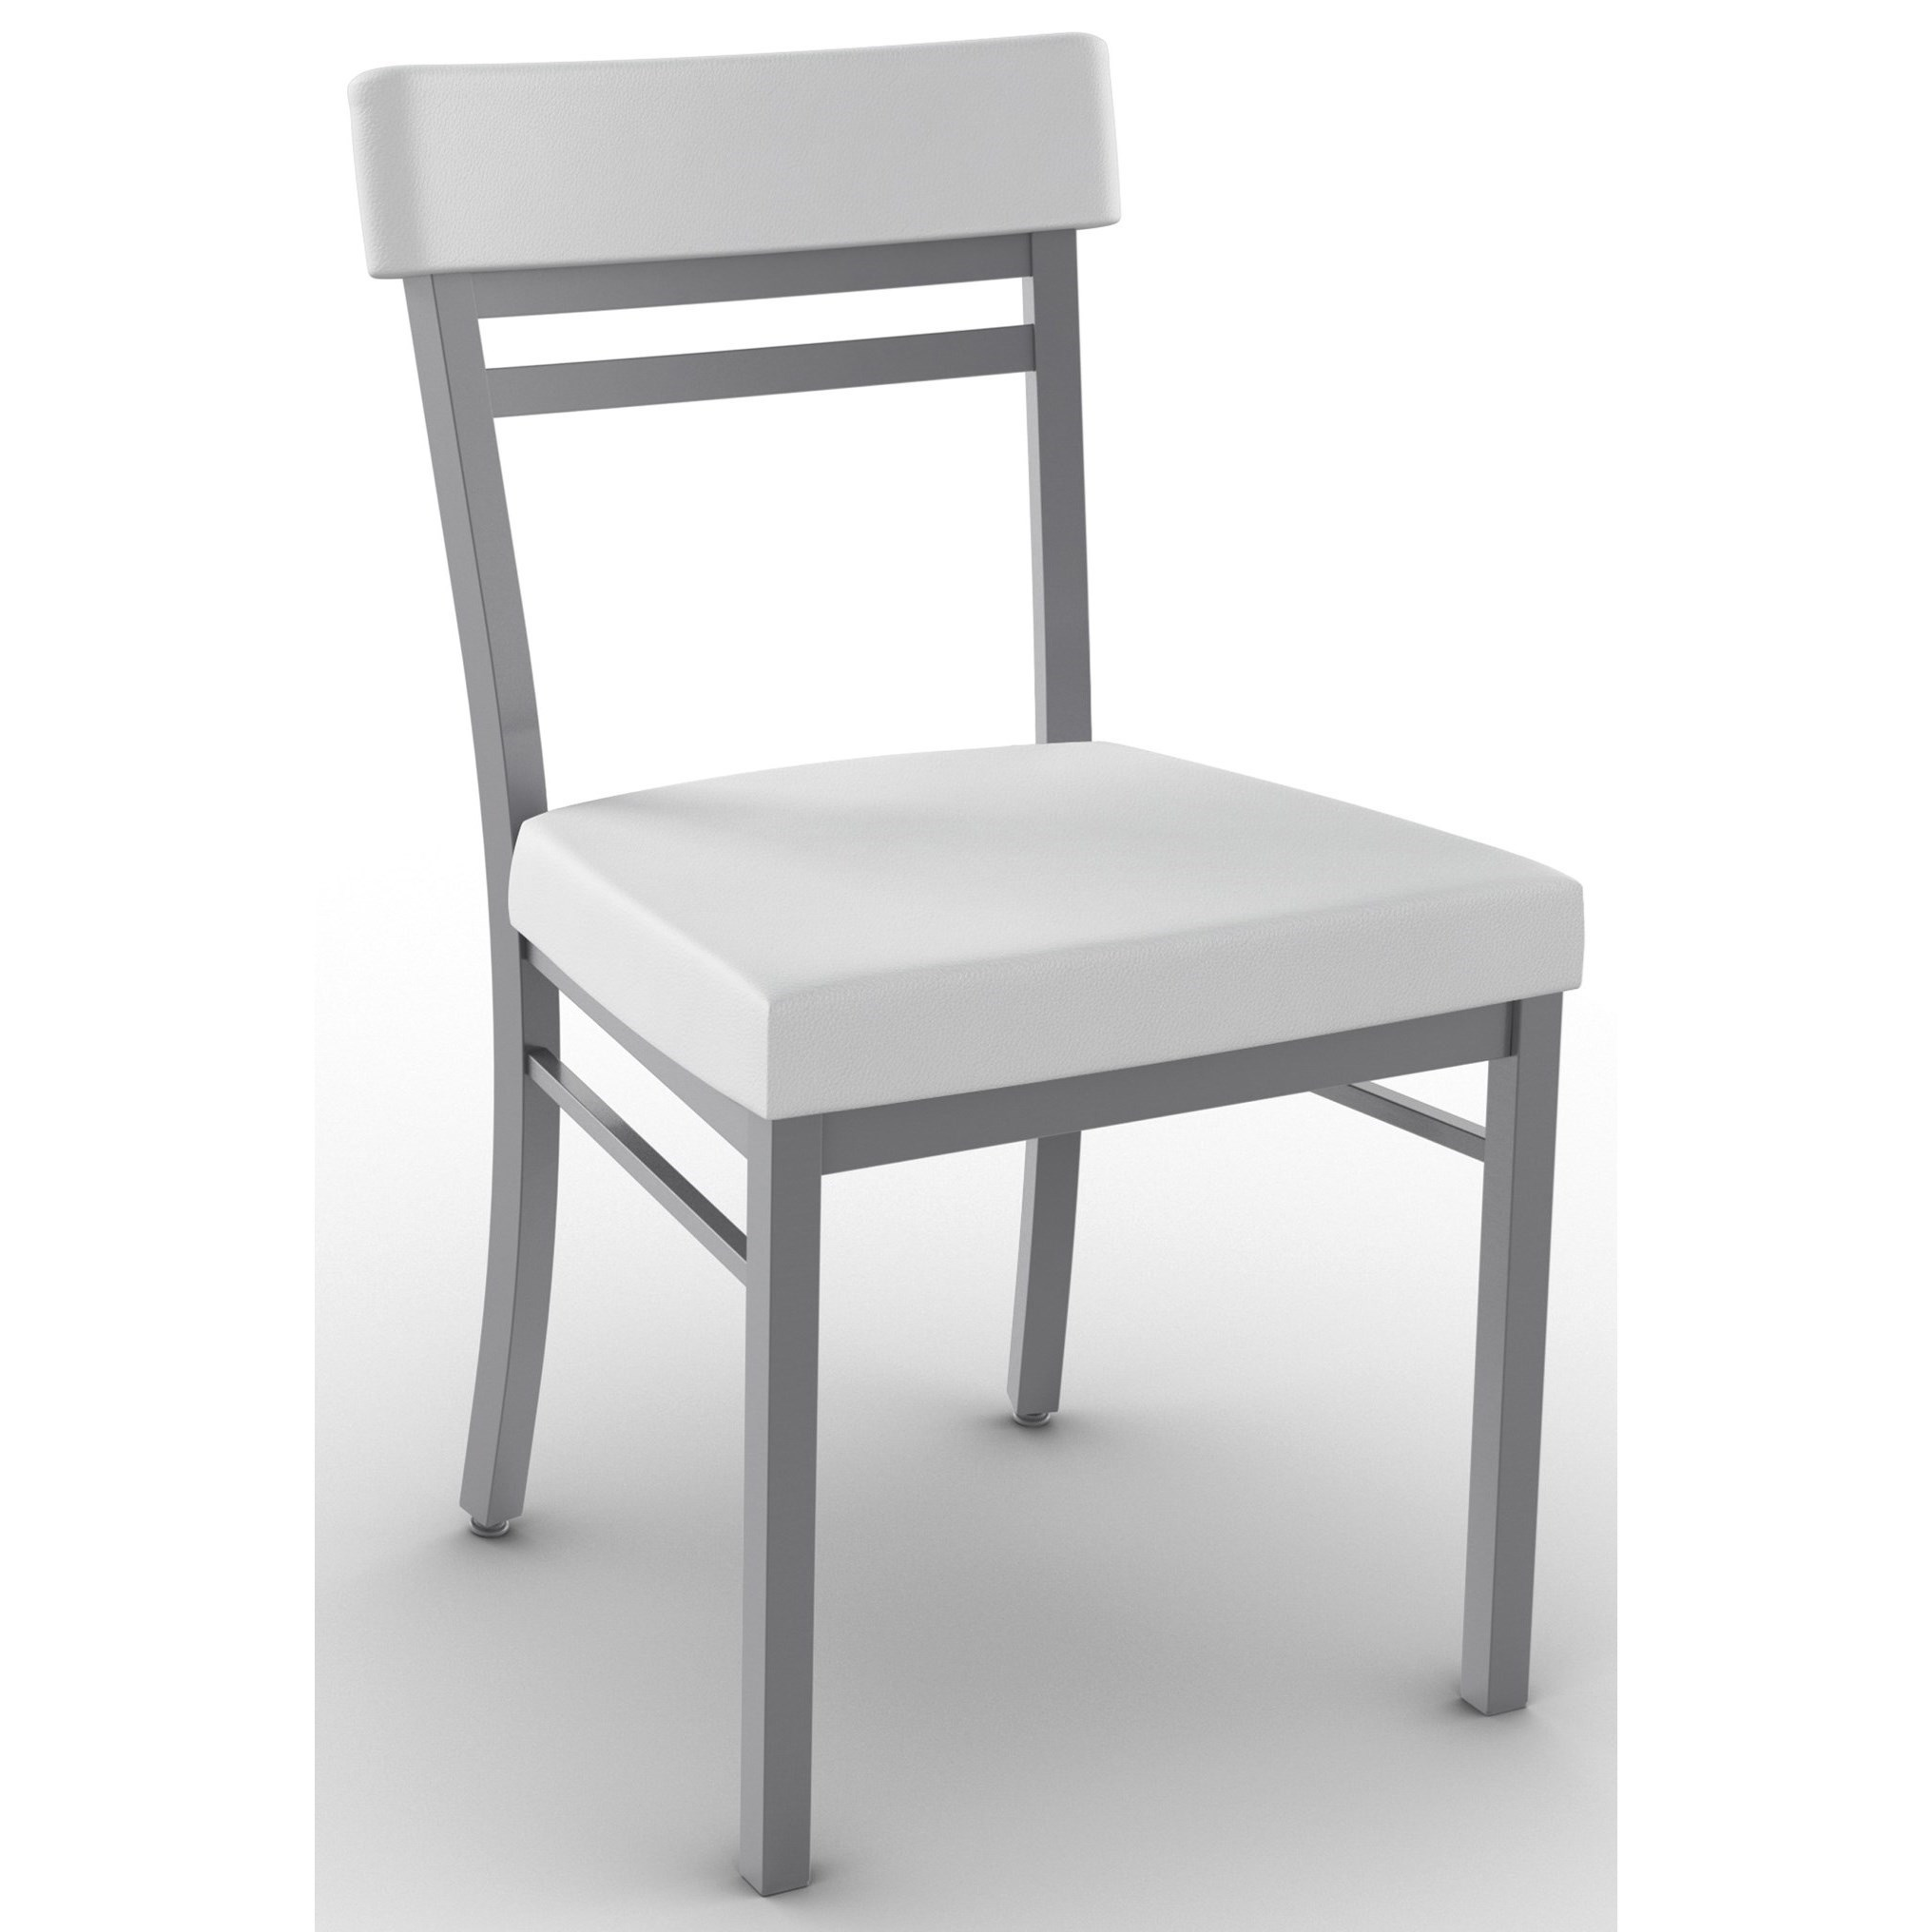 Urban Ronny Chair by Amisco at Rooms and Rest